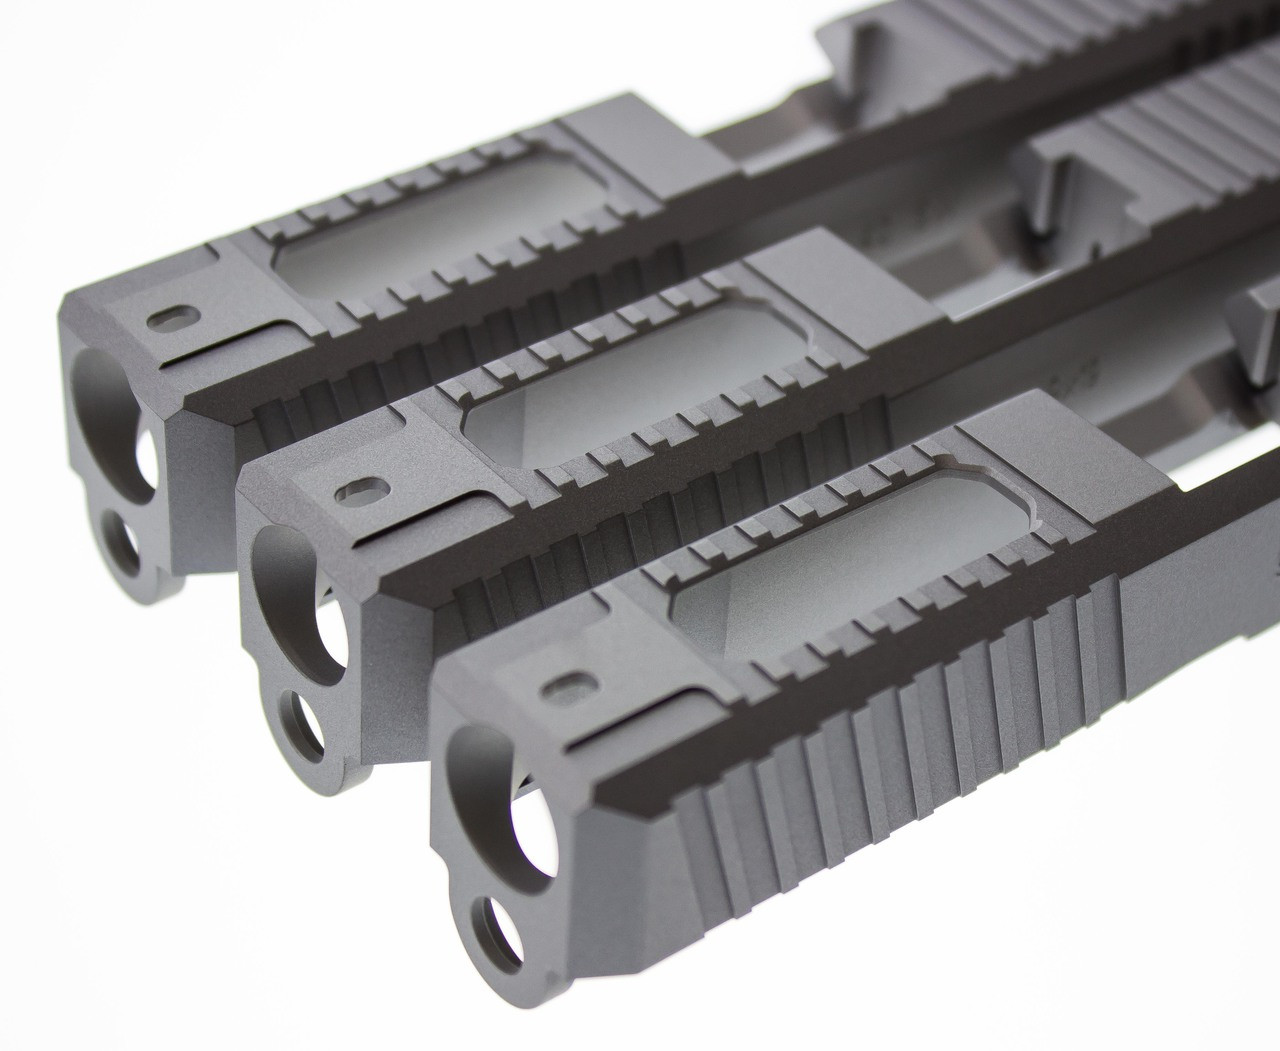 Ported Gripper Slide Cut Machining for Glock Slide by Battle Werx, Glock Front Slide Serrations, Enhanced Glock Rear Slide Serrations, 45 degree corner chamfers. Top Glock slide serrations, Top slide port.